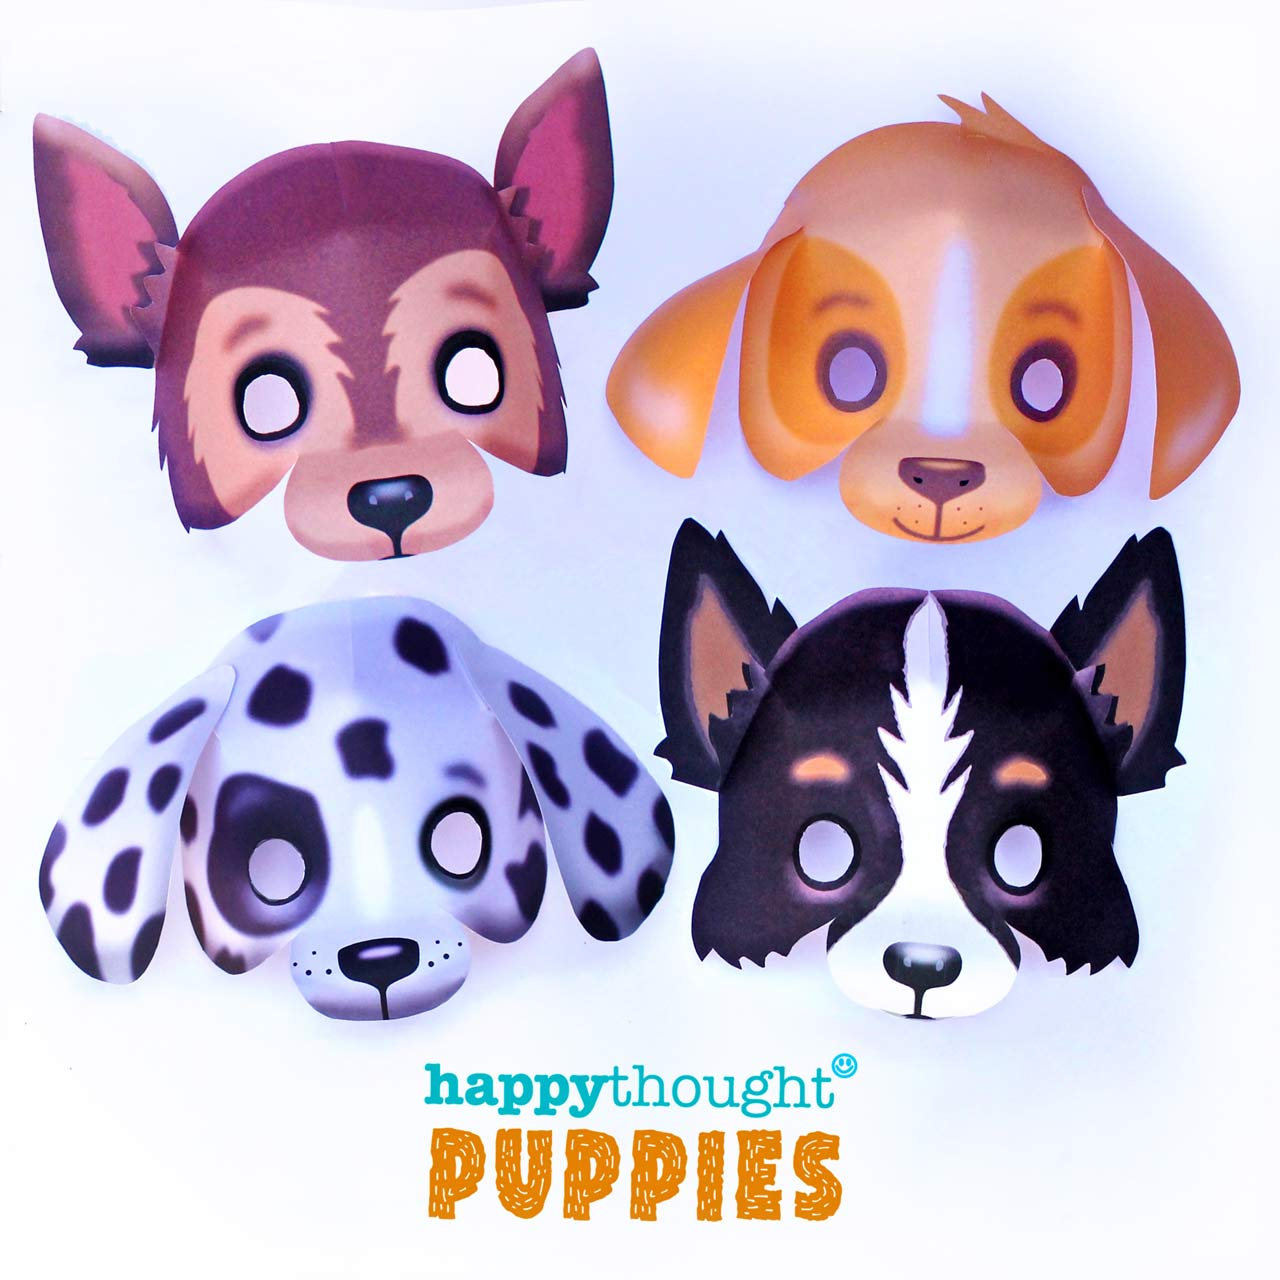 DIY puppy masks: Border collie sheepdog, German Shepherd, a Dalmation and a Labrador masks